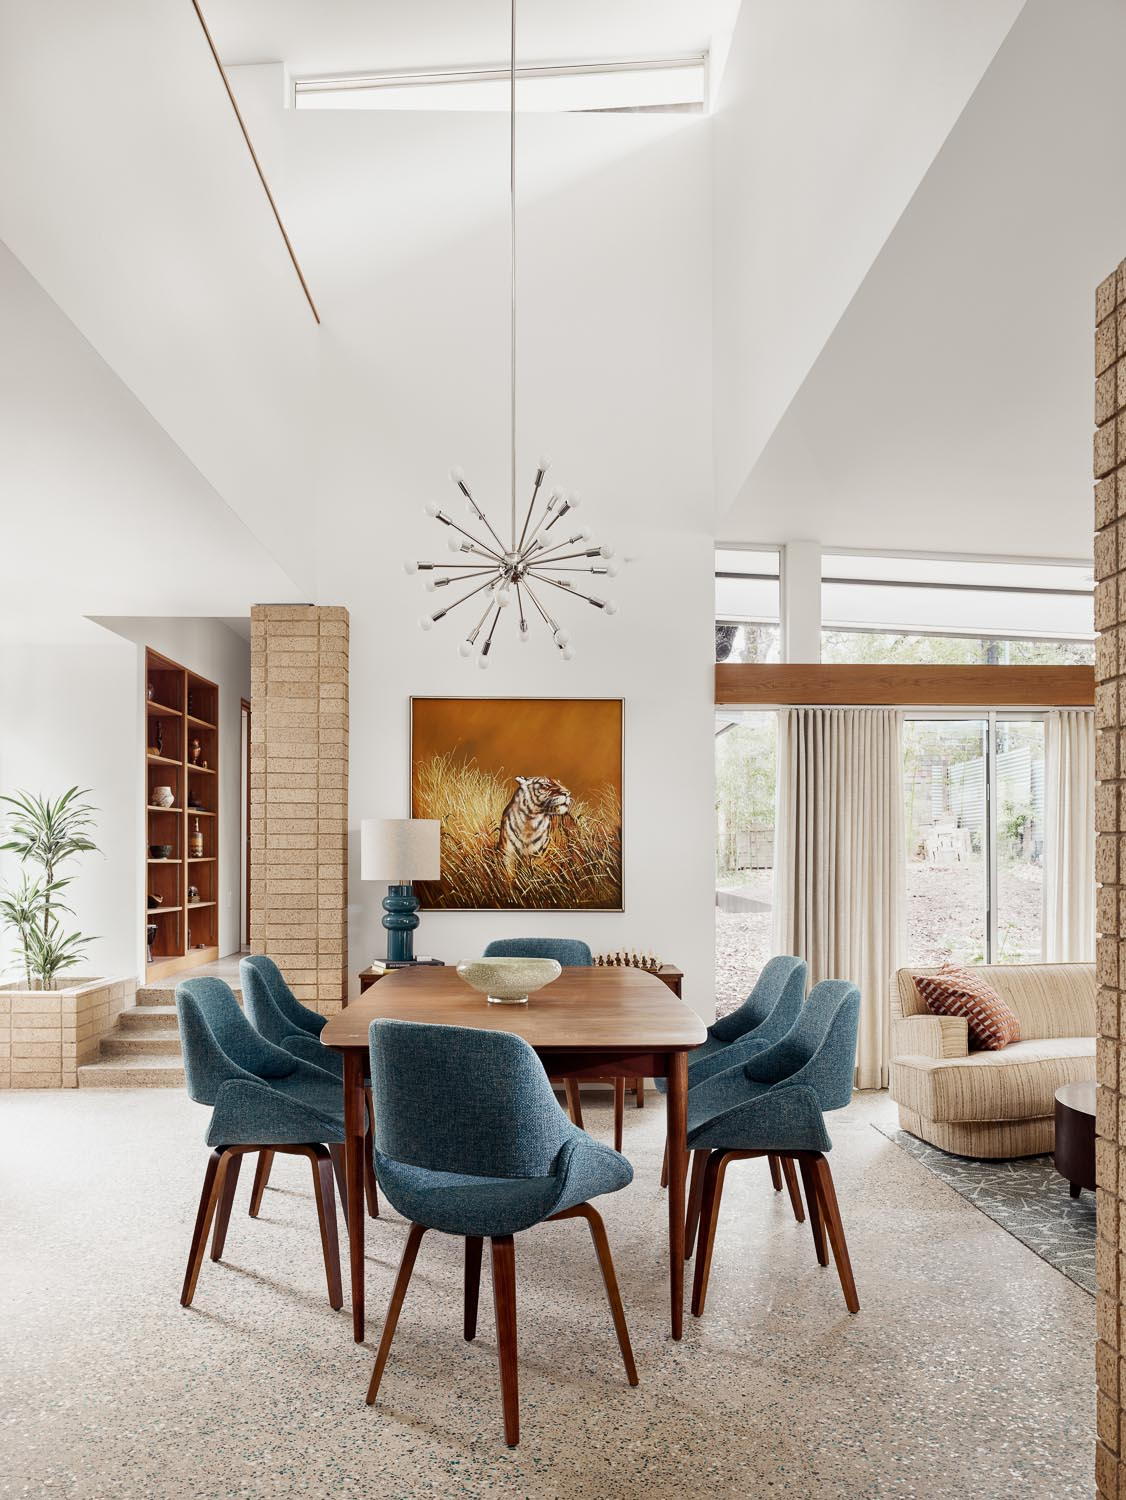 In this mid-century modern inspired dining room, there's a dark wood table with matching chairs that add a pop of color to the open plan interior. A Sputnik inspired pendant light draws the eye upwards to the high ceiling.